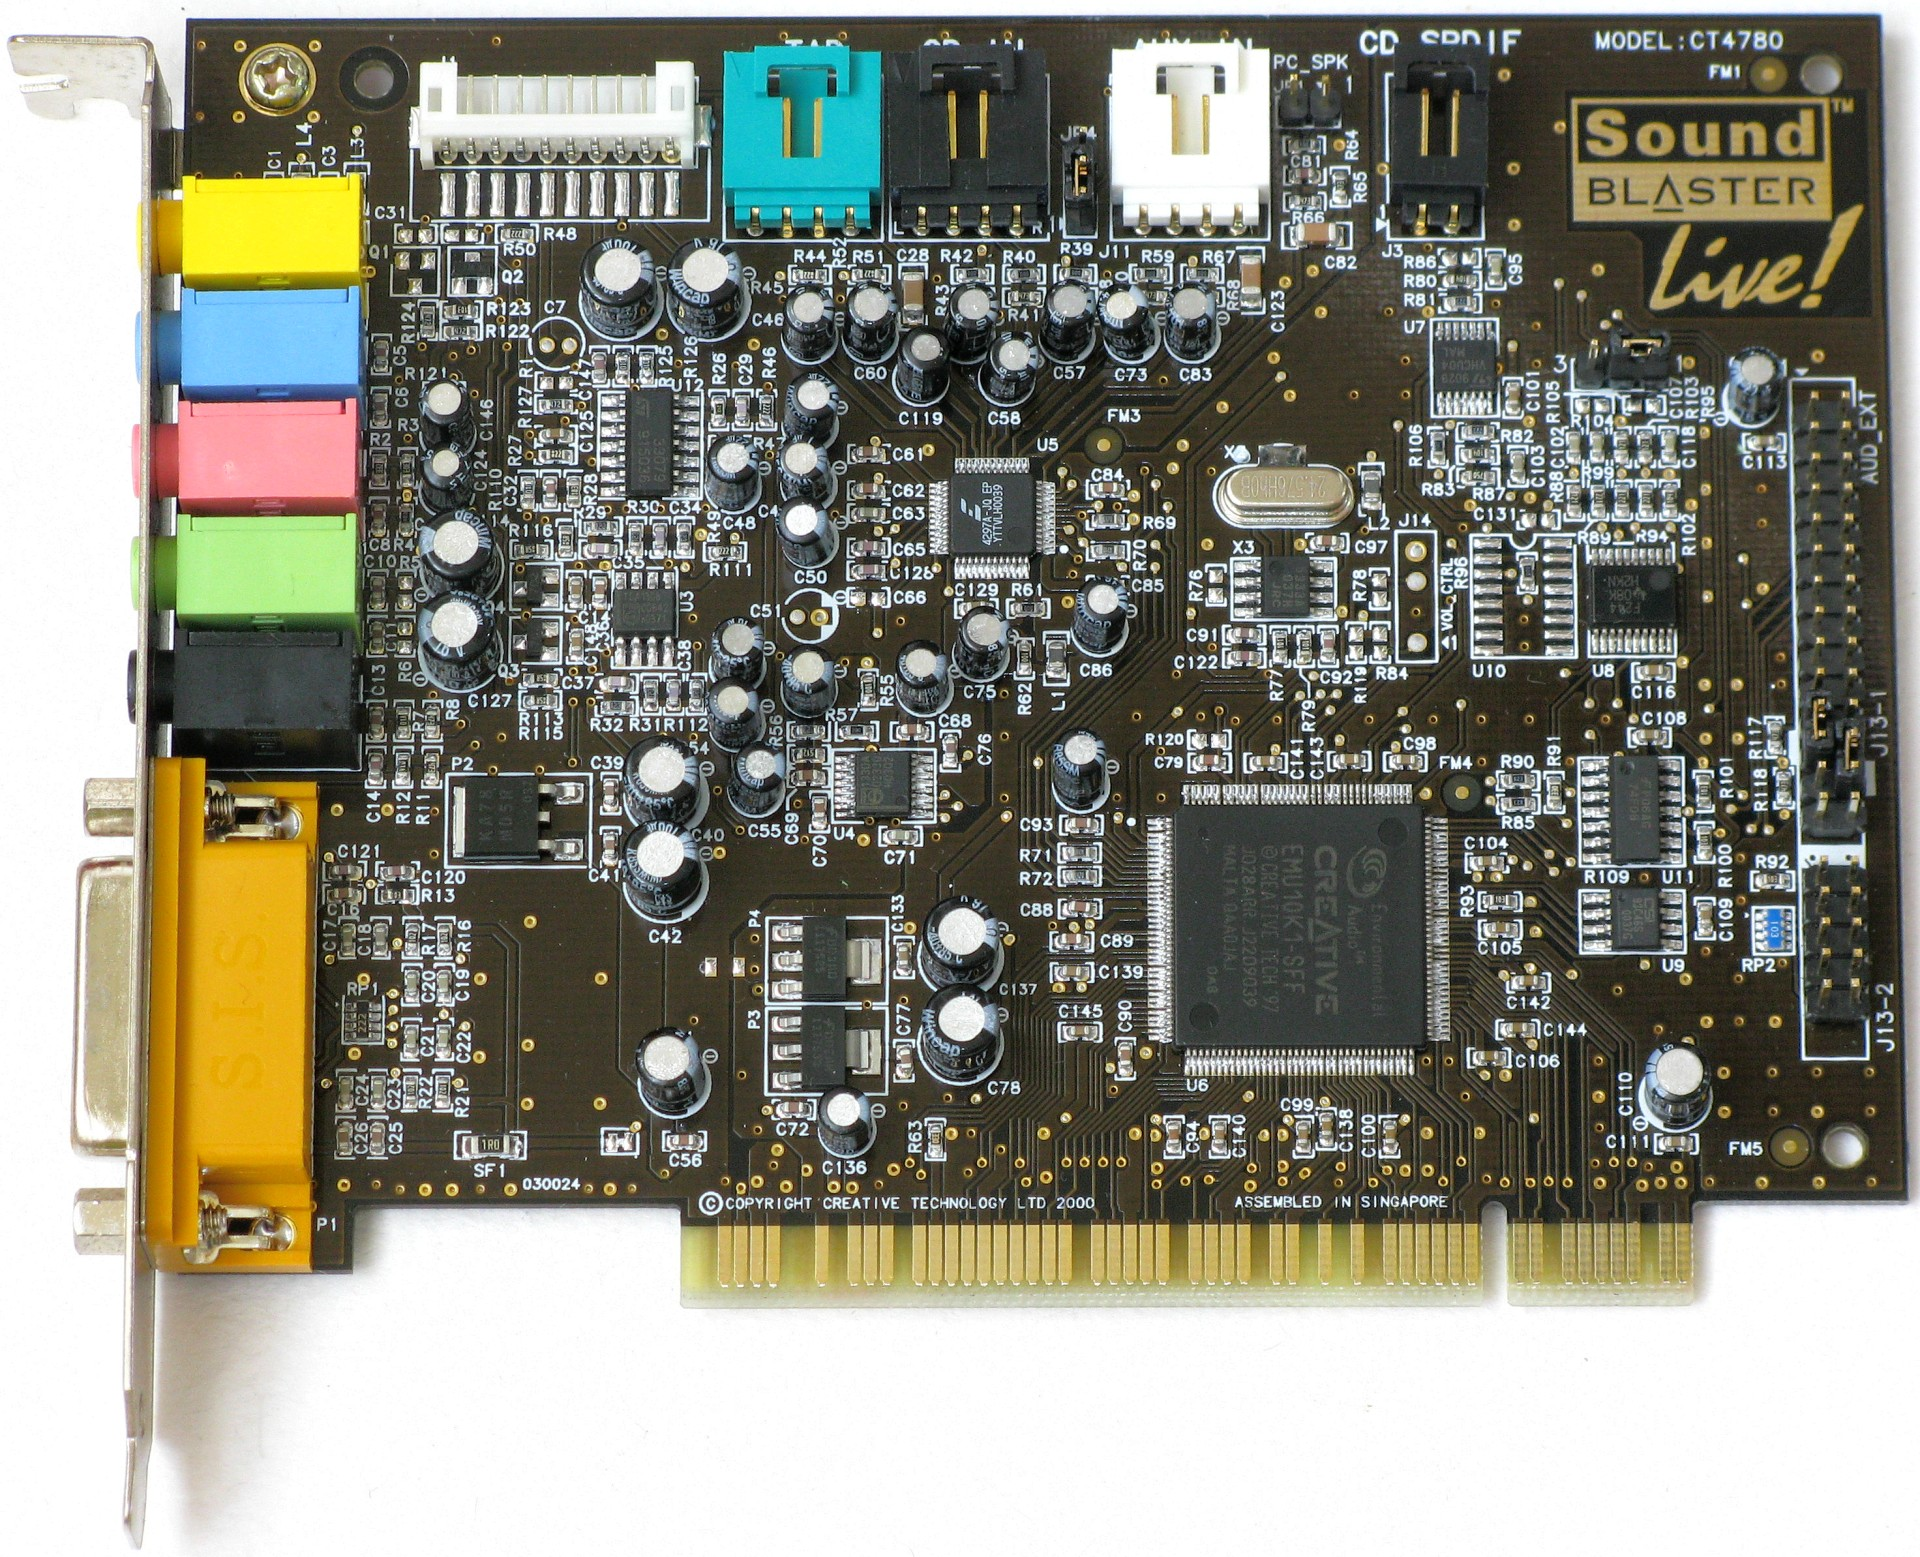 SOUND BLASTER LIVE CT DRIVERS DOWNLOAD